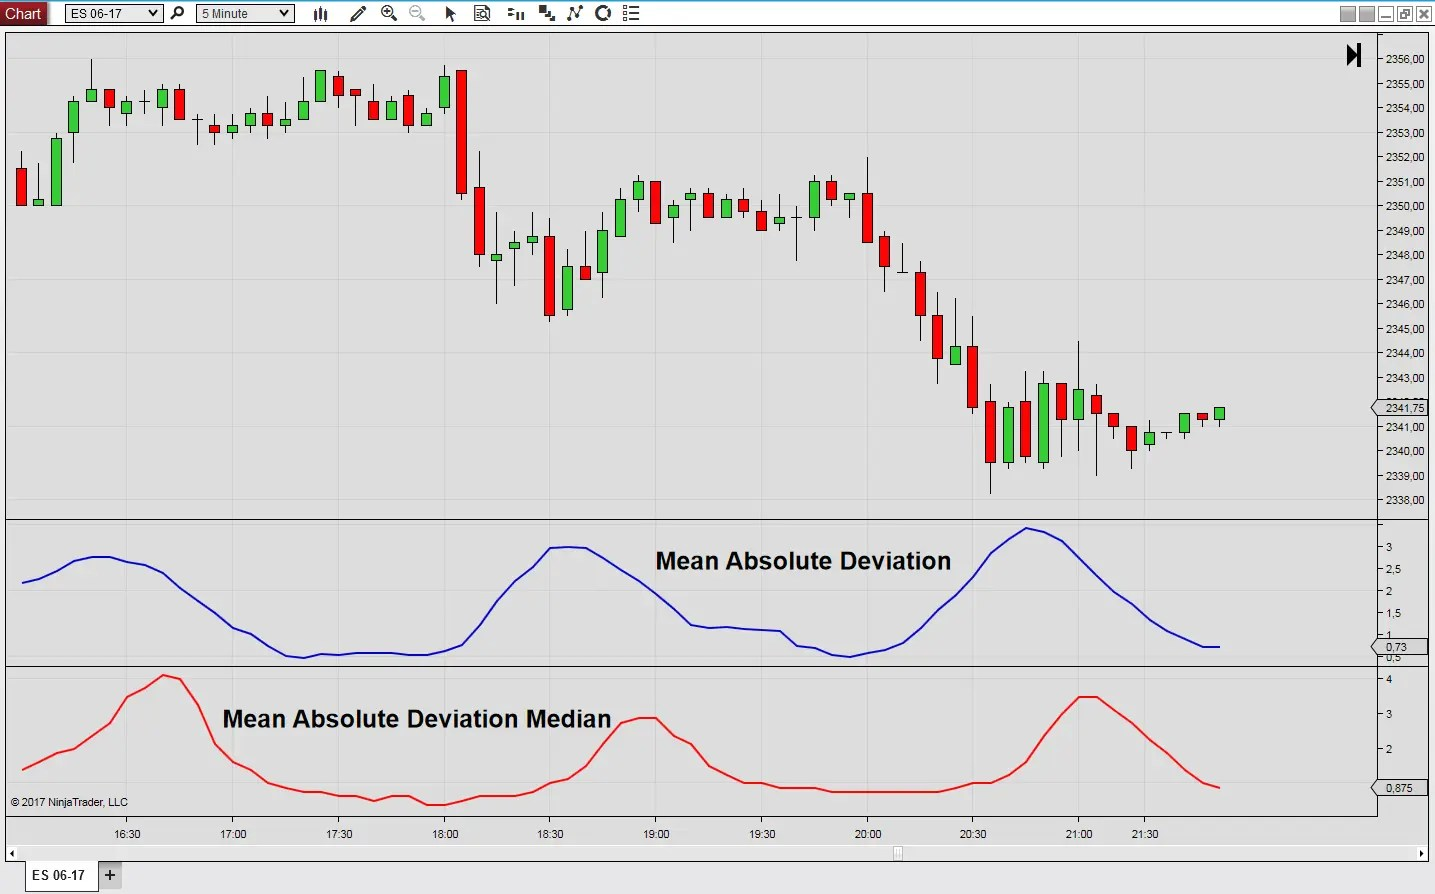 Mean Absolute Deviation Around The Median